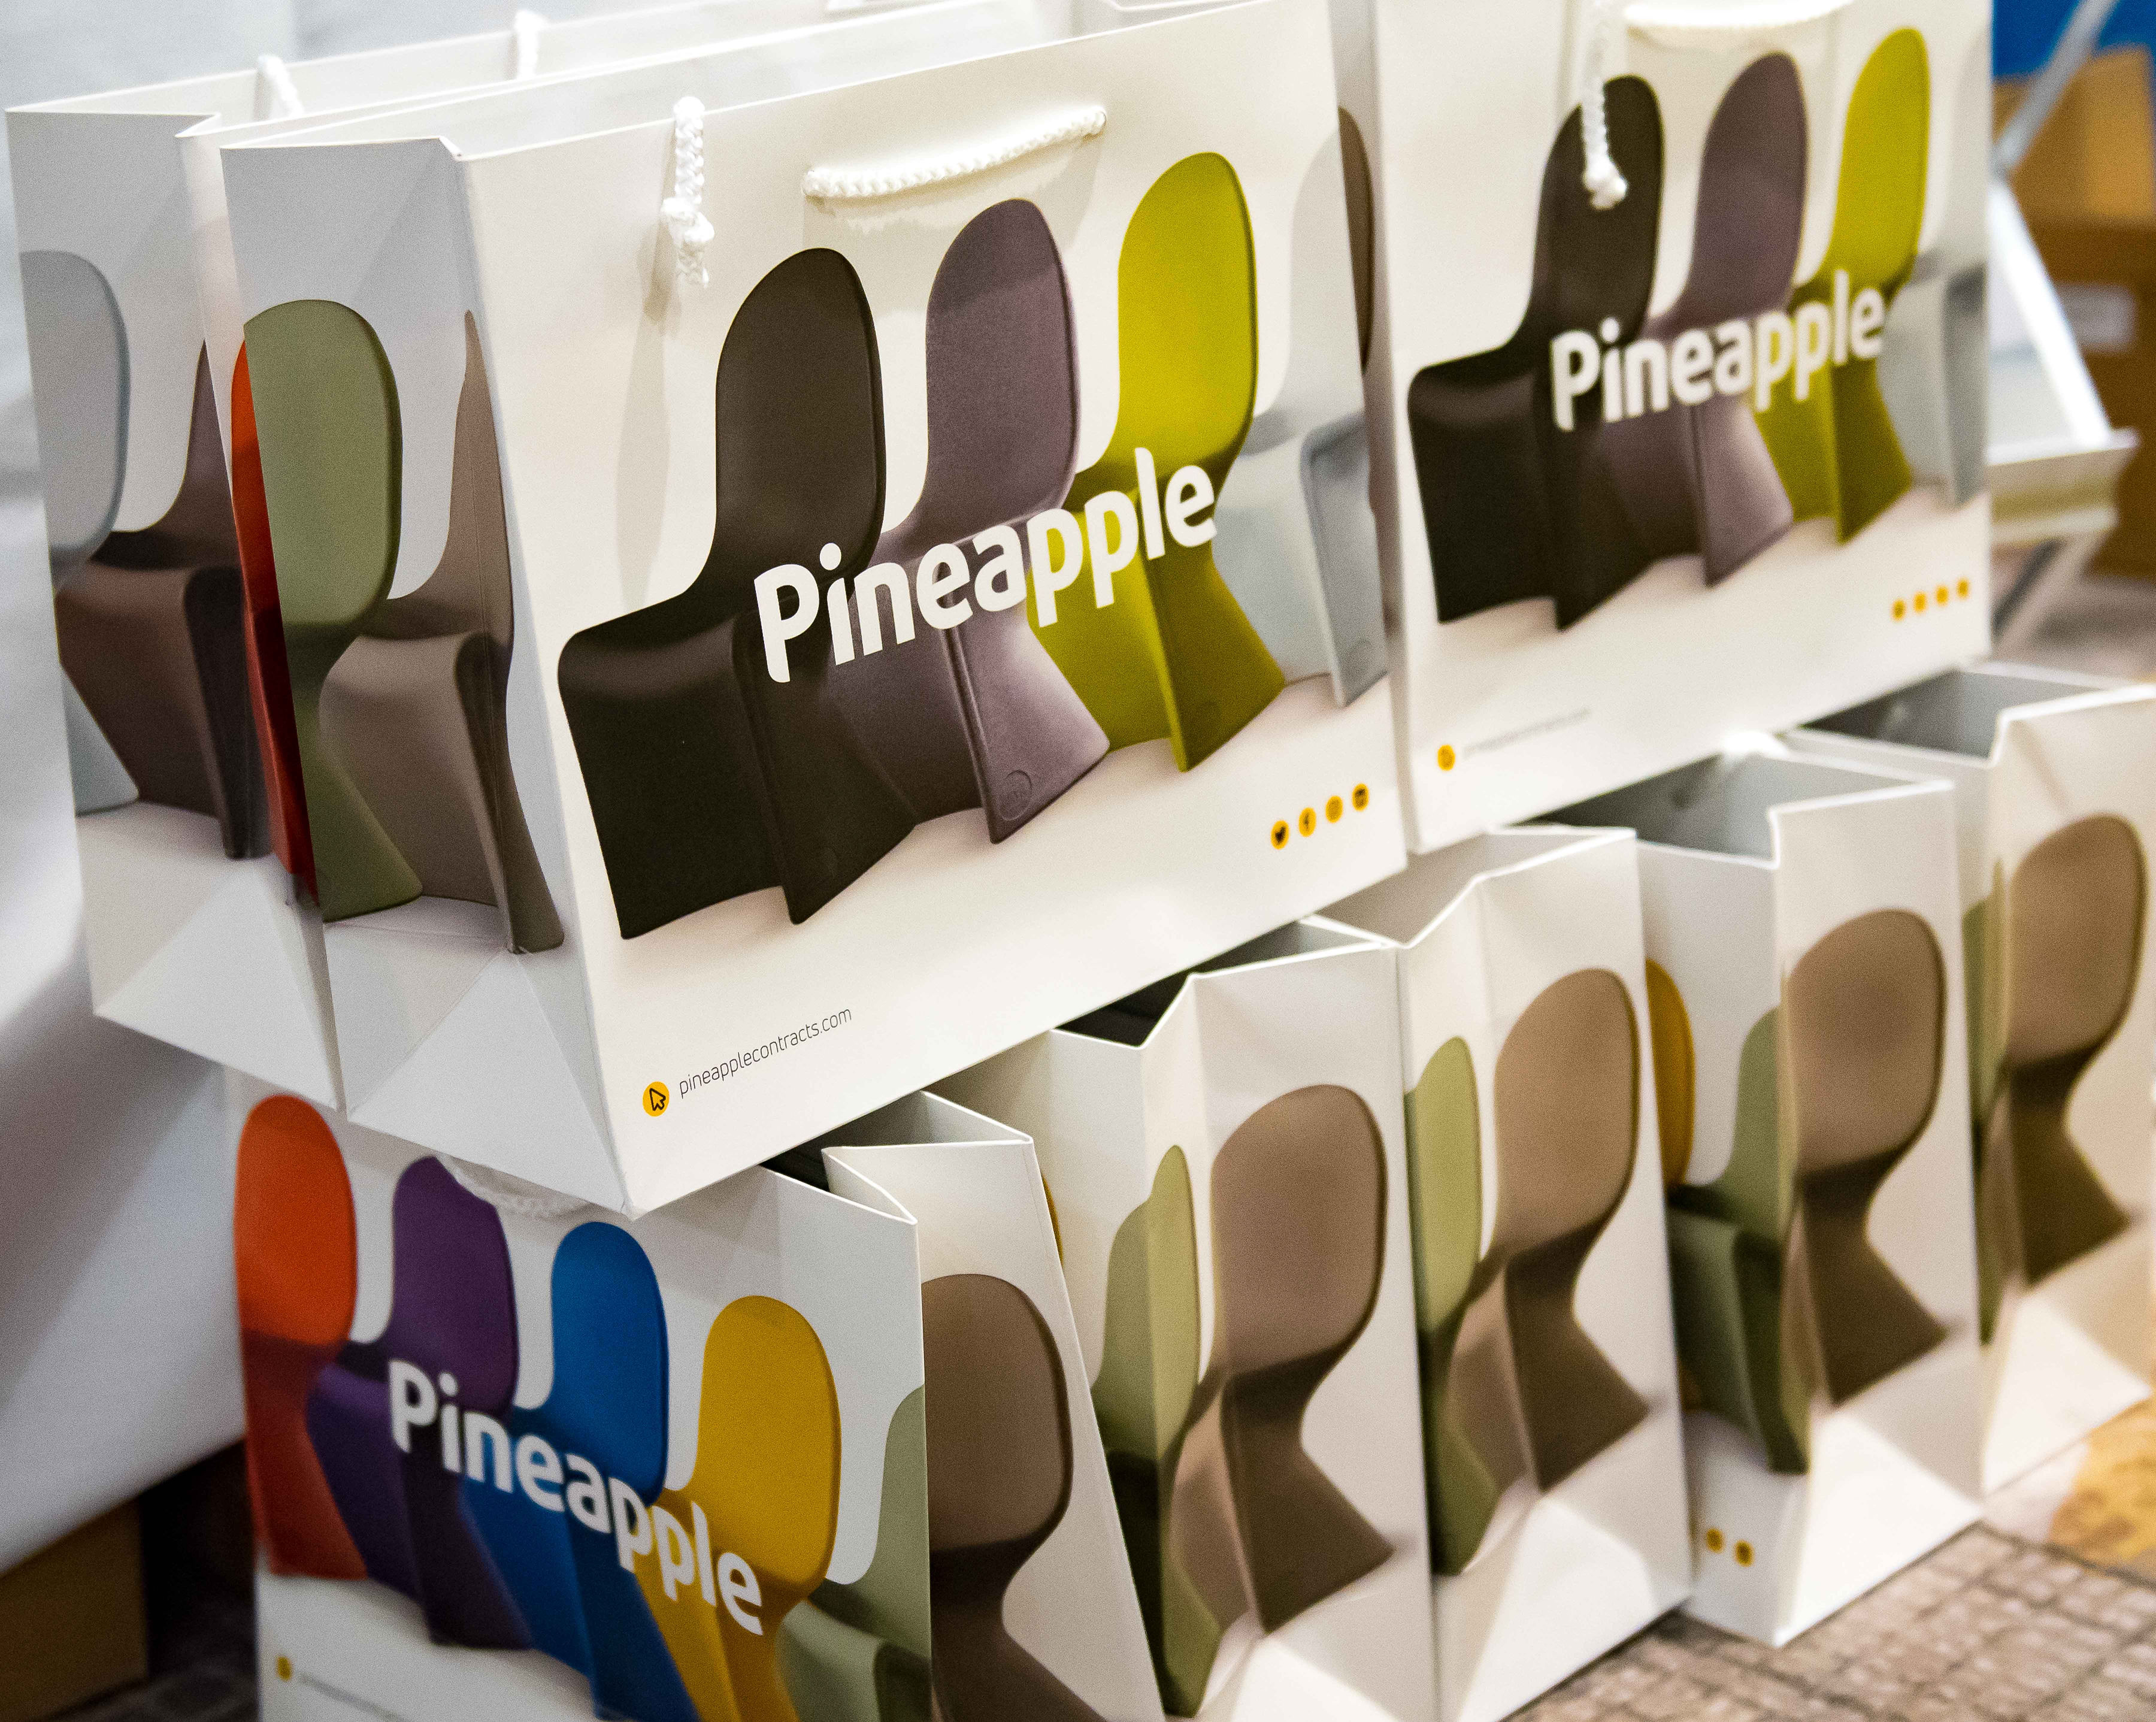 Pineapple - one of our exhibitors